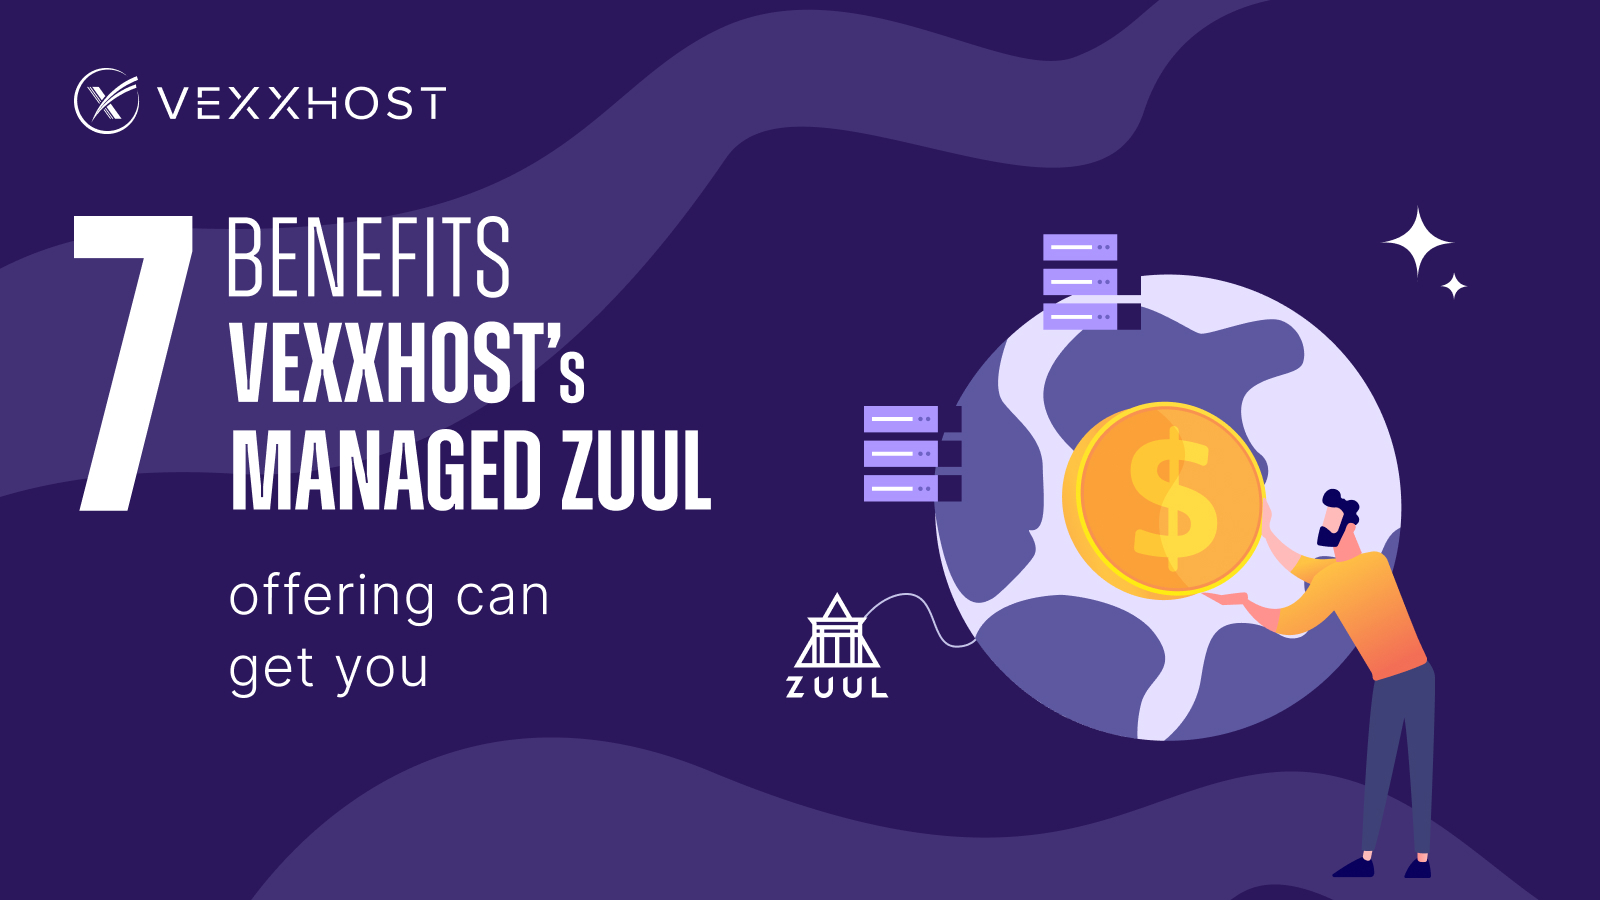 7 Benefits VEXXHOST's Managed Zuul Offering Can Get You